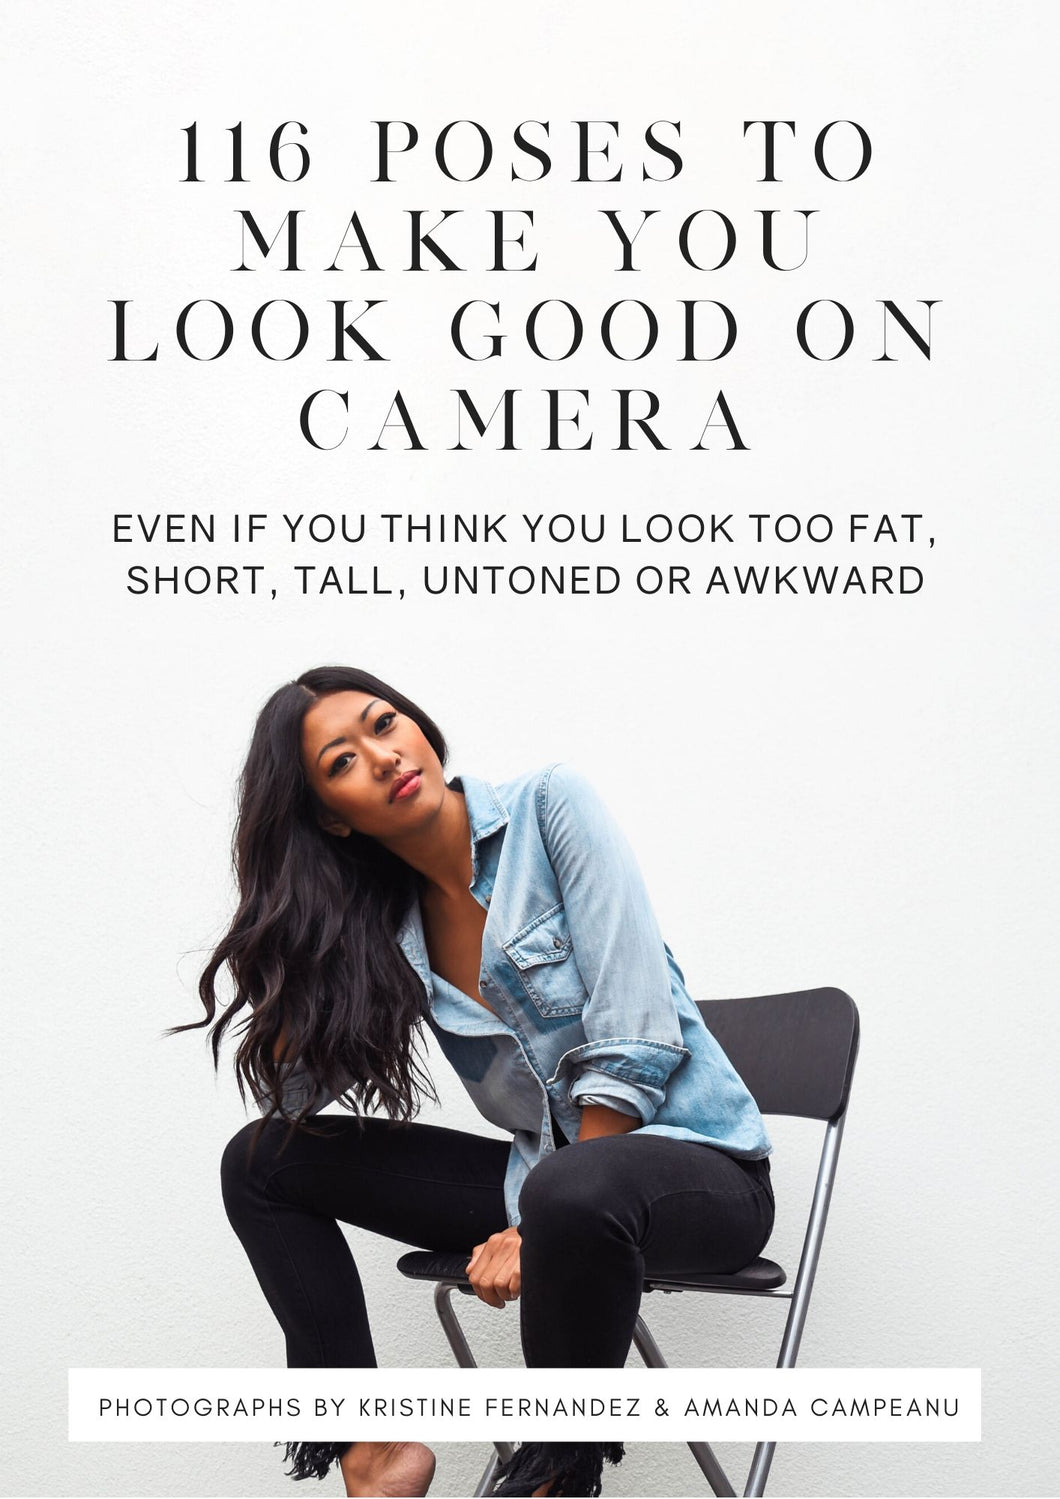 116 Poses To Make You Look Your Best On Camera (Even If You Think You Look Too Fat, Short, Tall, Untoned, Or Awkward)